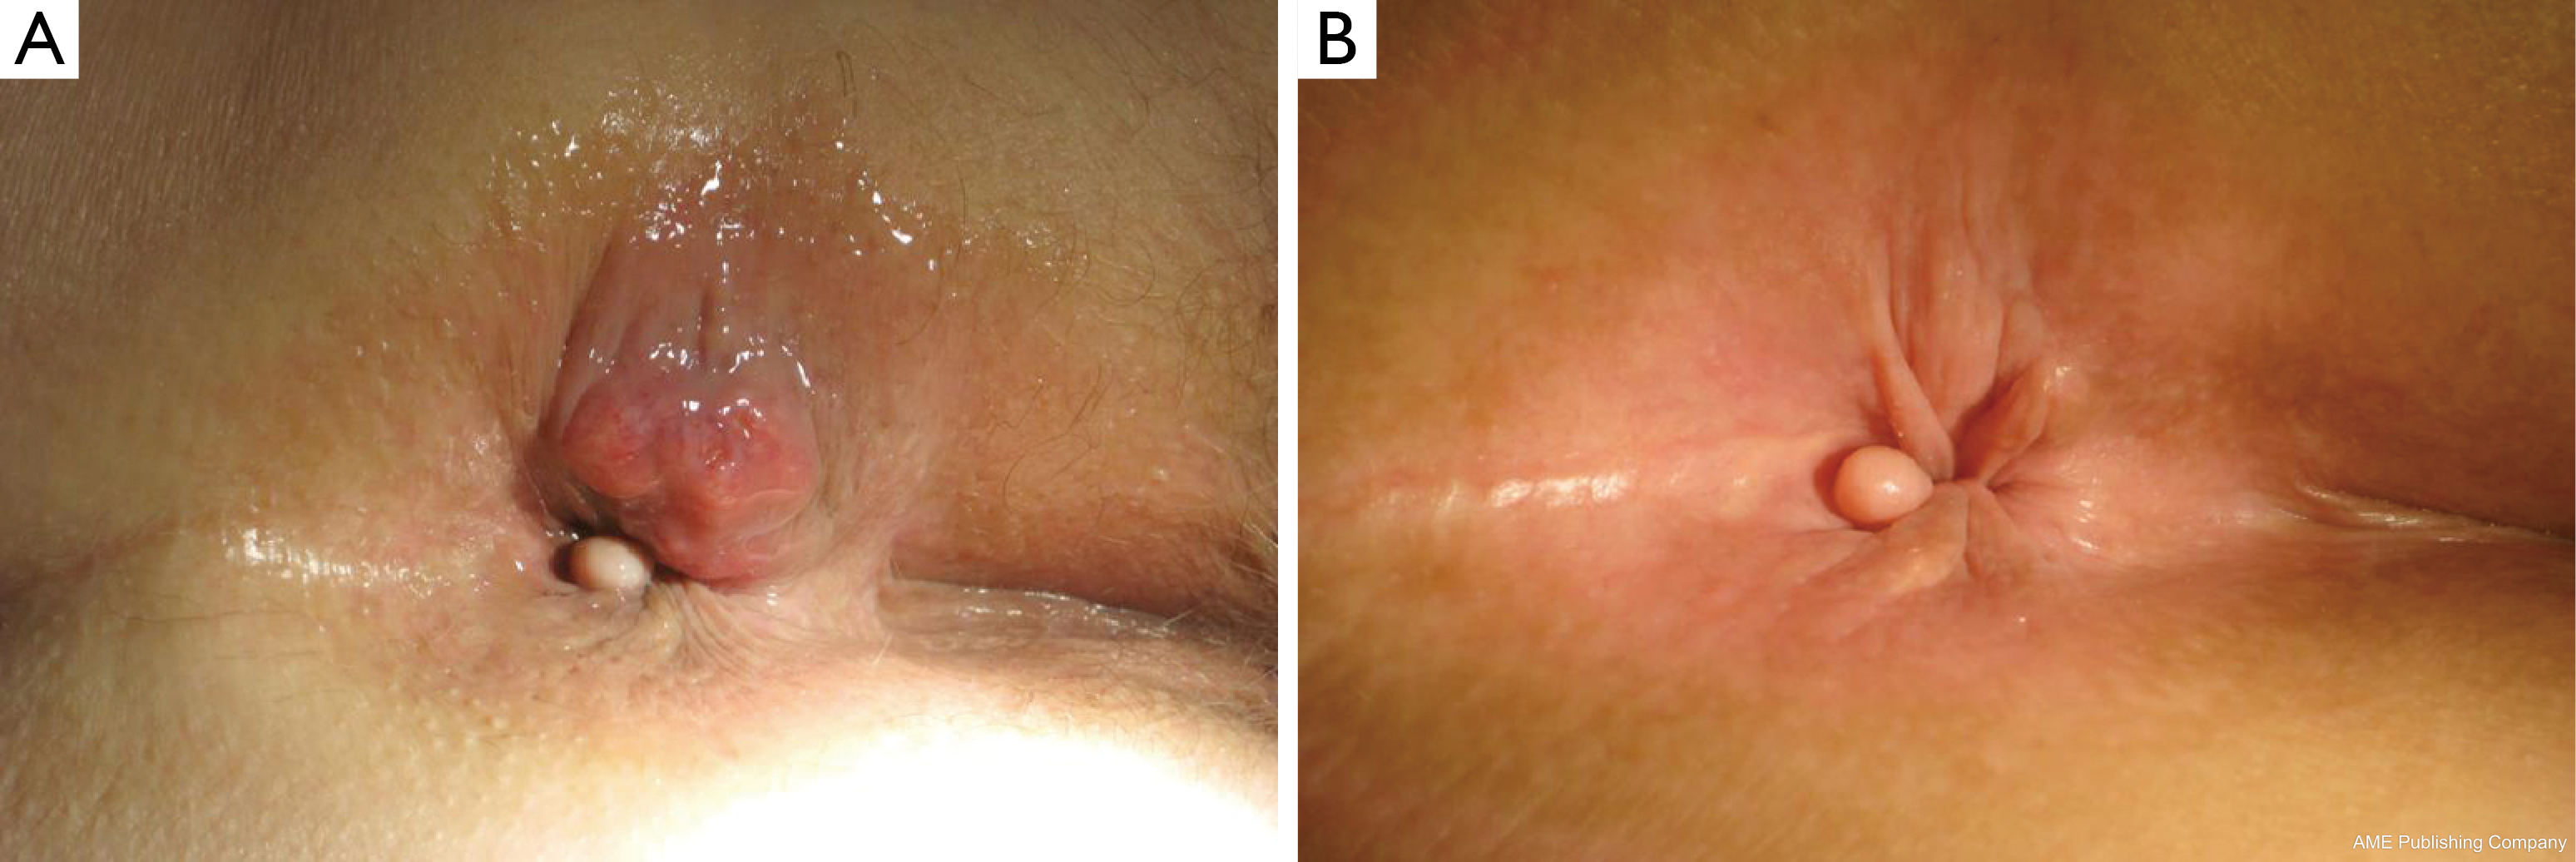 Anal skin cancer galleries 953